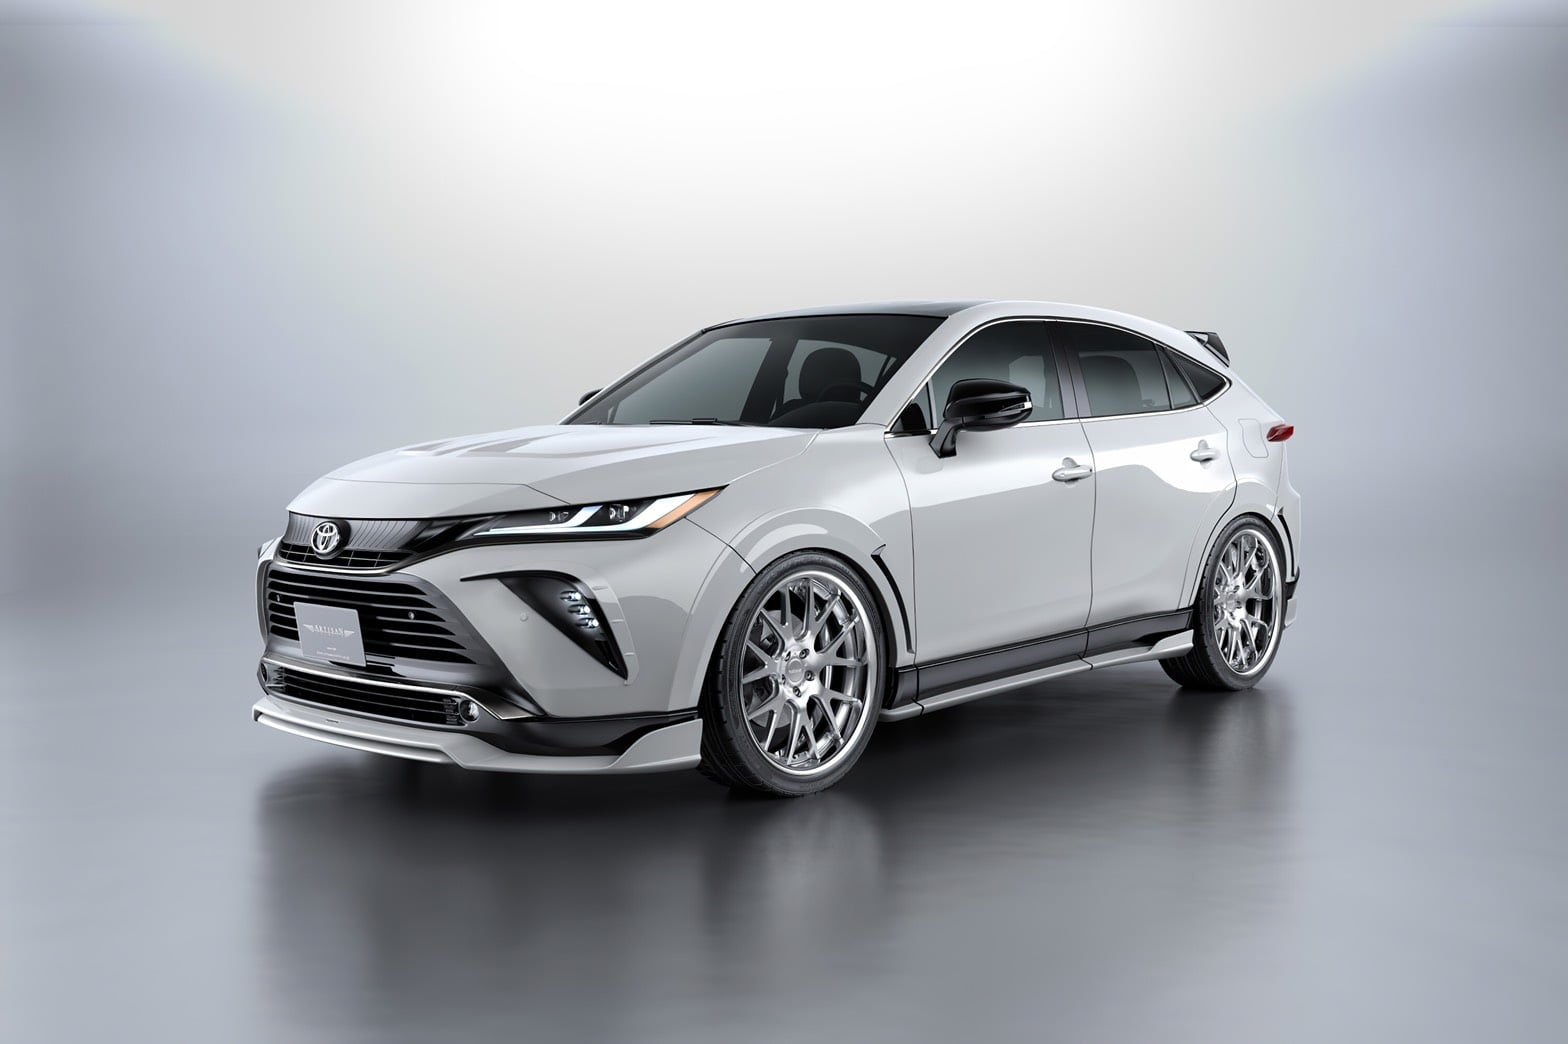 Toyota Venza/Harrier Body Kit by Artisan Spirits